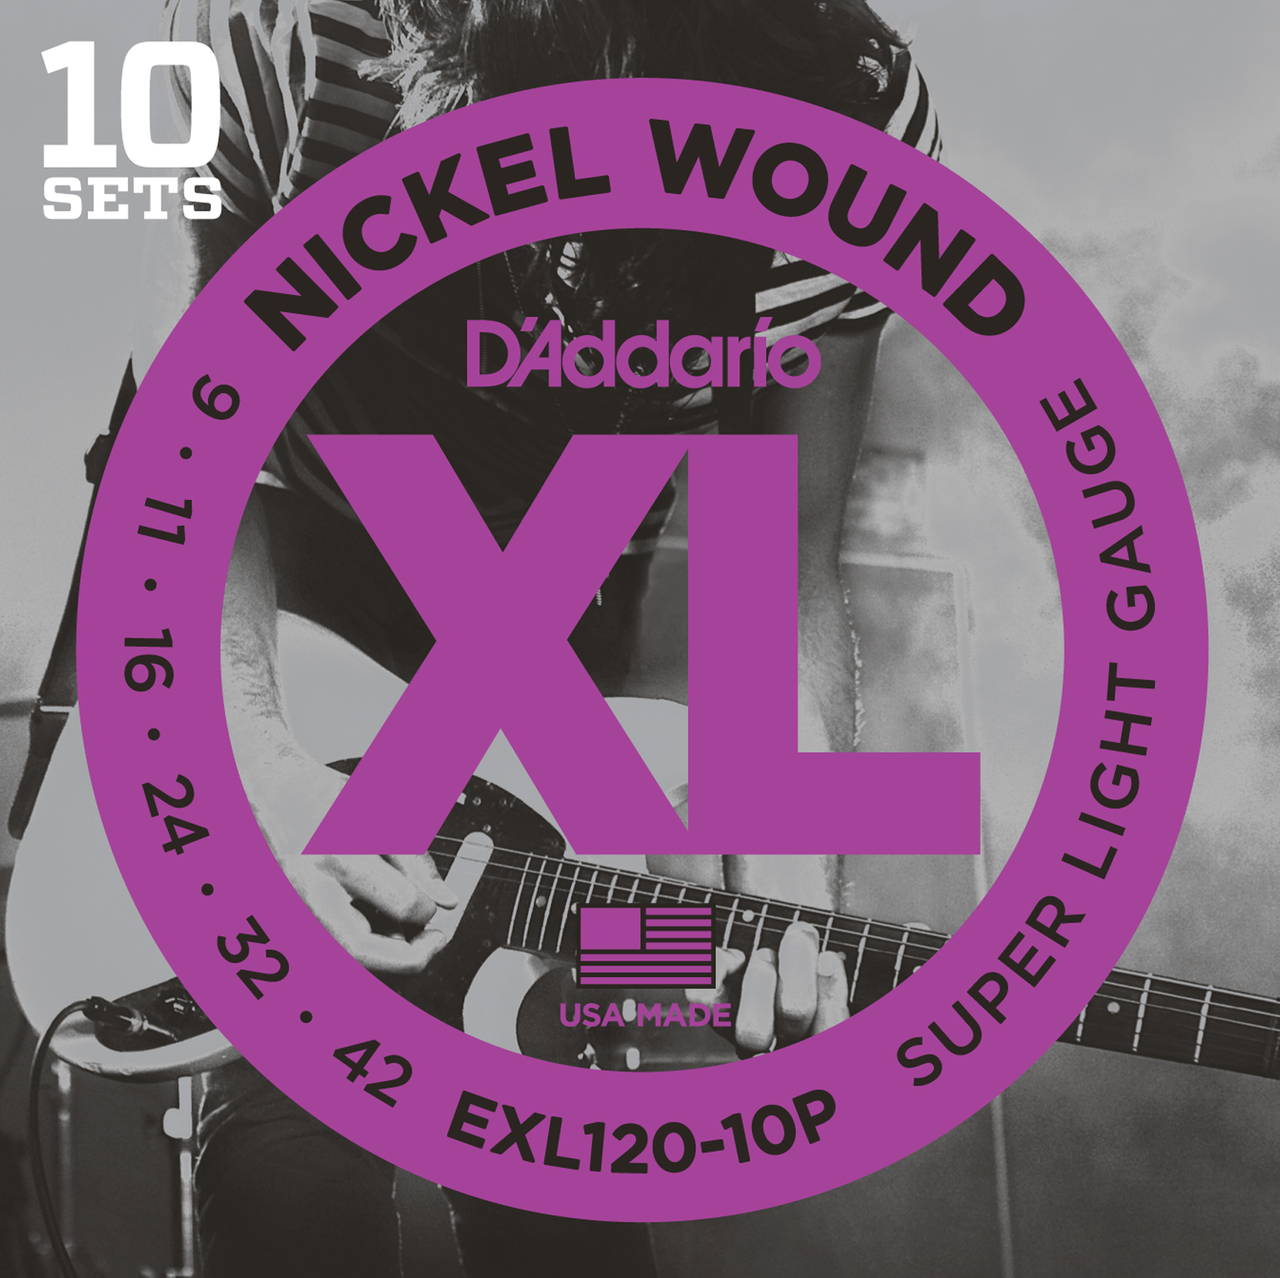 D'addario EXl120 Super Light Guitar Strings 10 sets Pro Pack